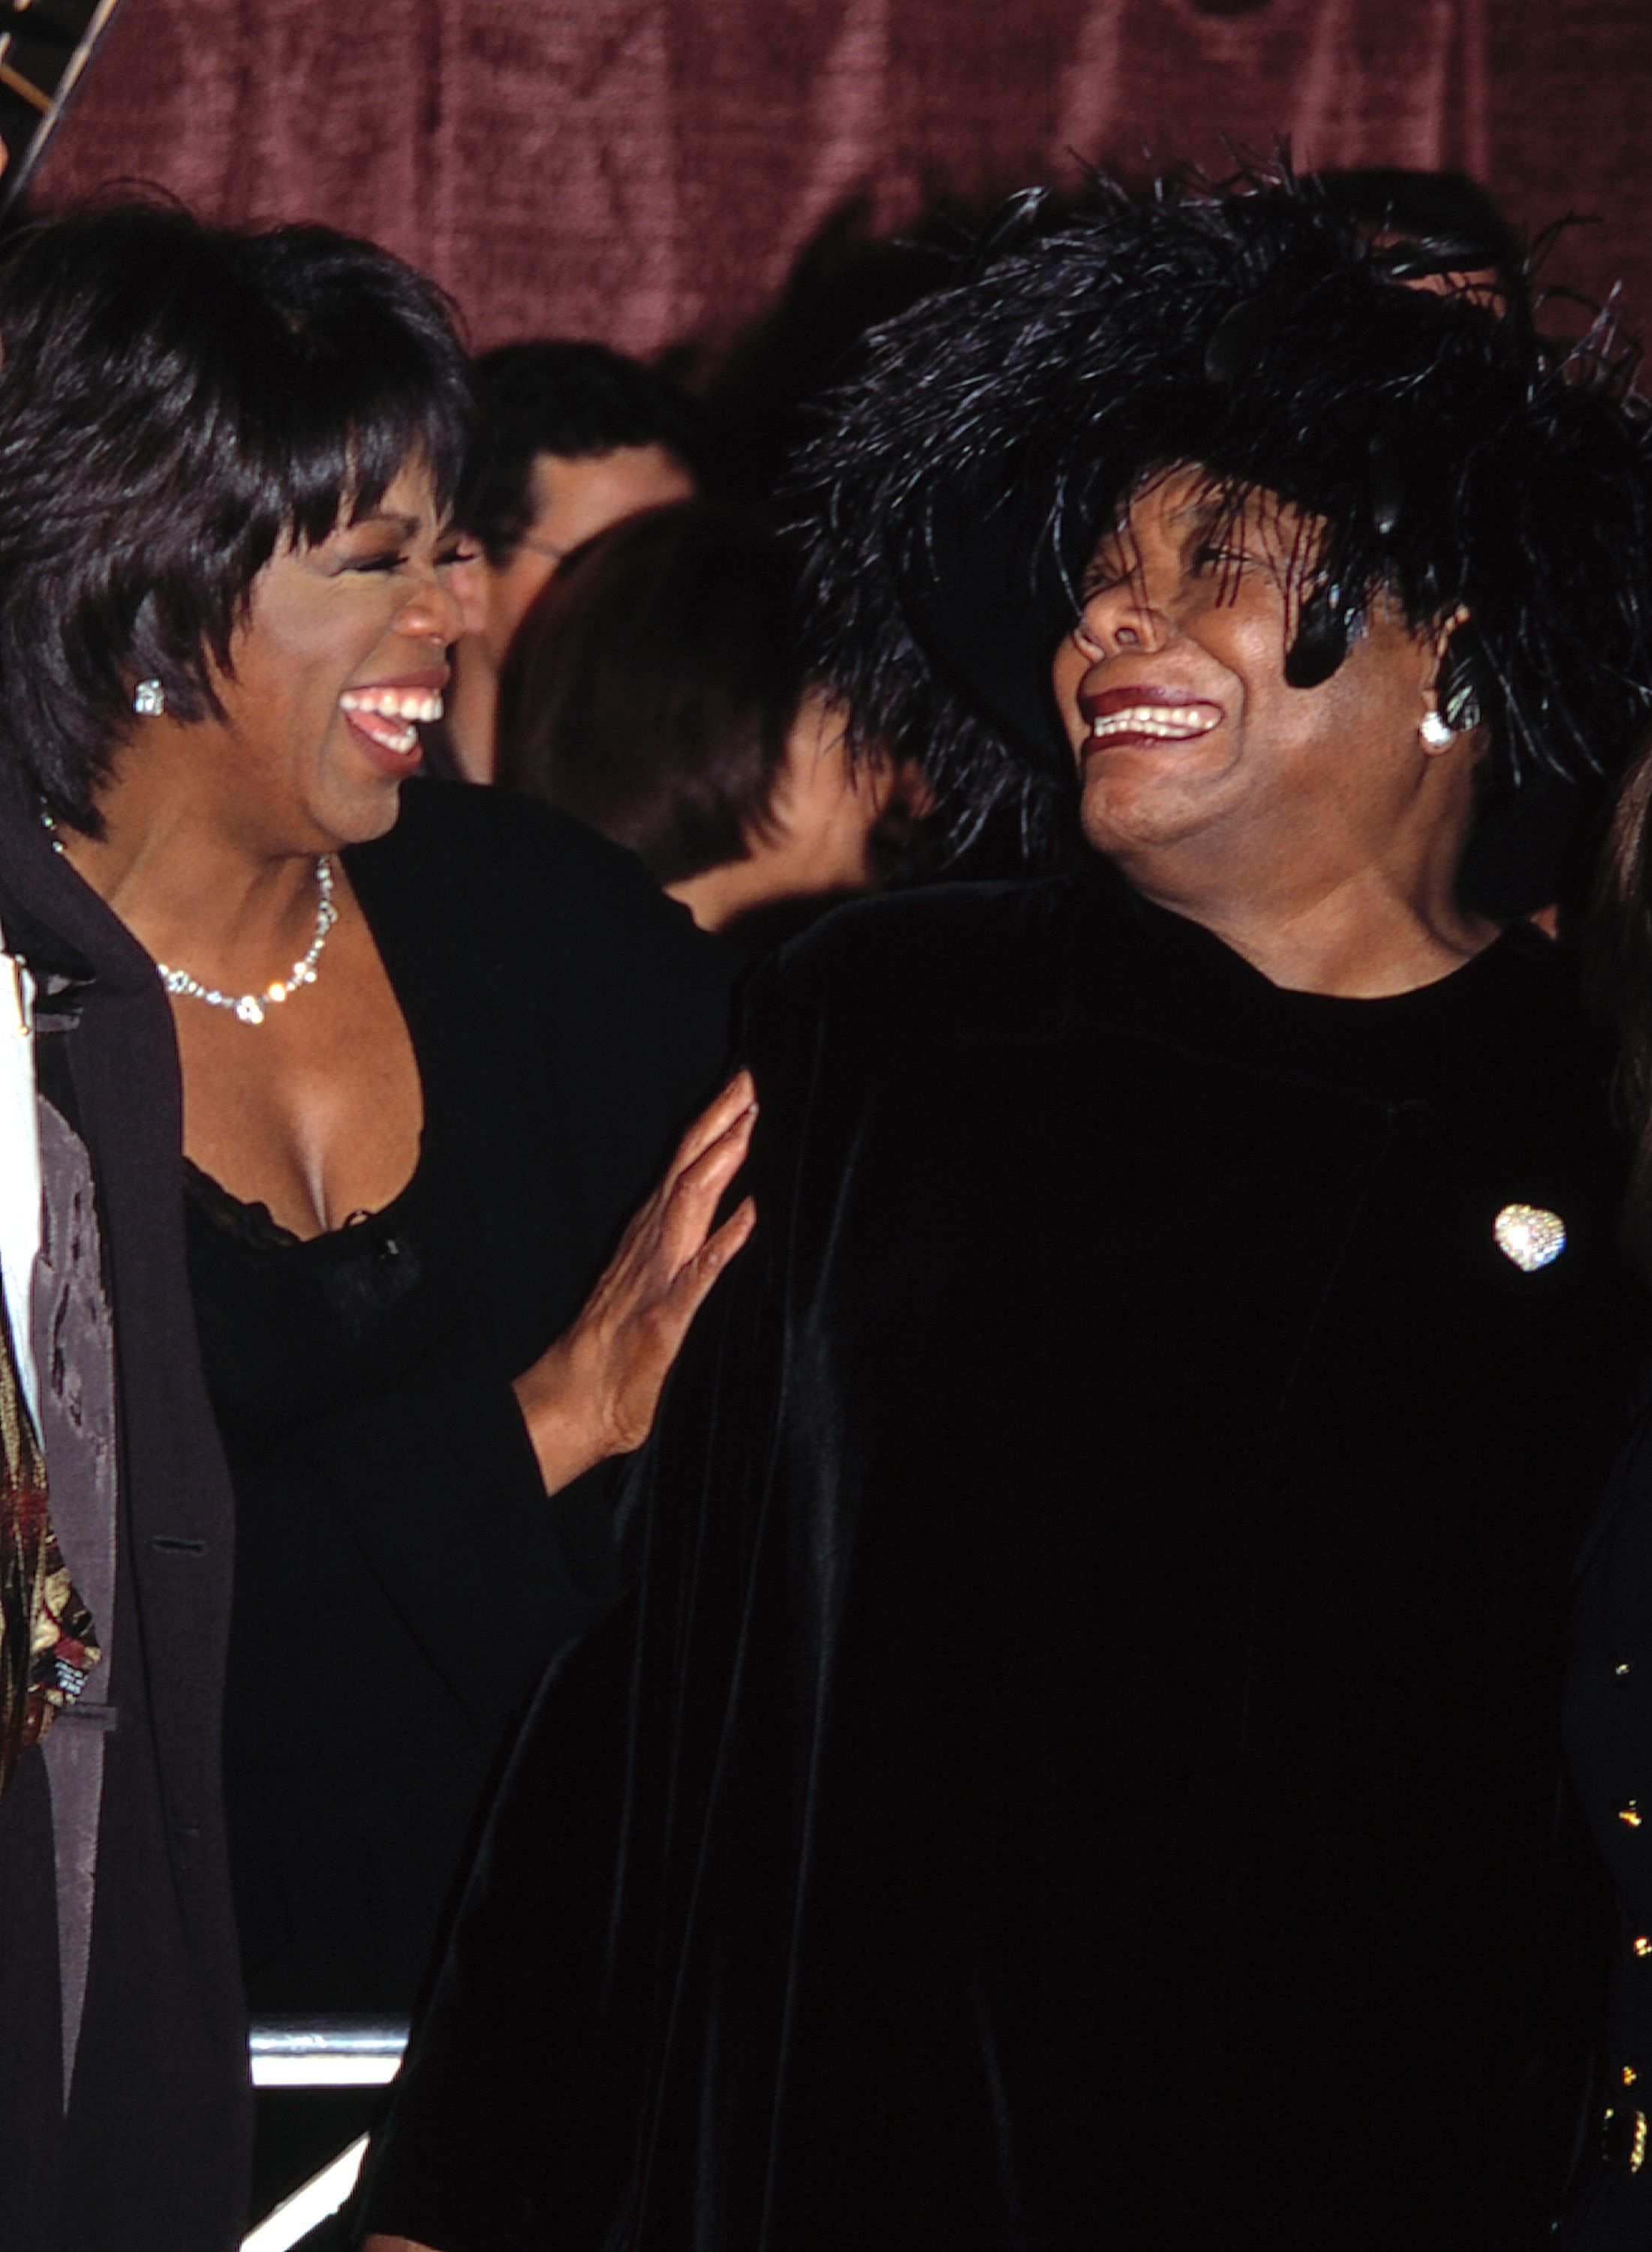 Oprah Winfrey and Maya Angelou Attending the Celebration of Quincy Jones' 50th Year in Music at Roseland, New York City. November 7, 1995 (Photo by Walter McBride/Corbis via Getty Images)